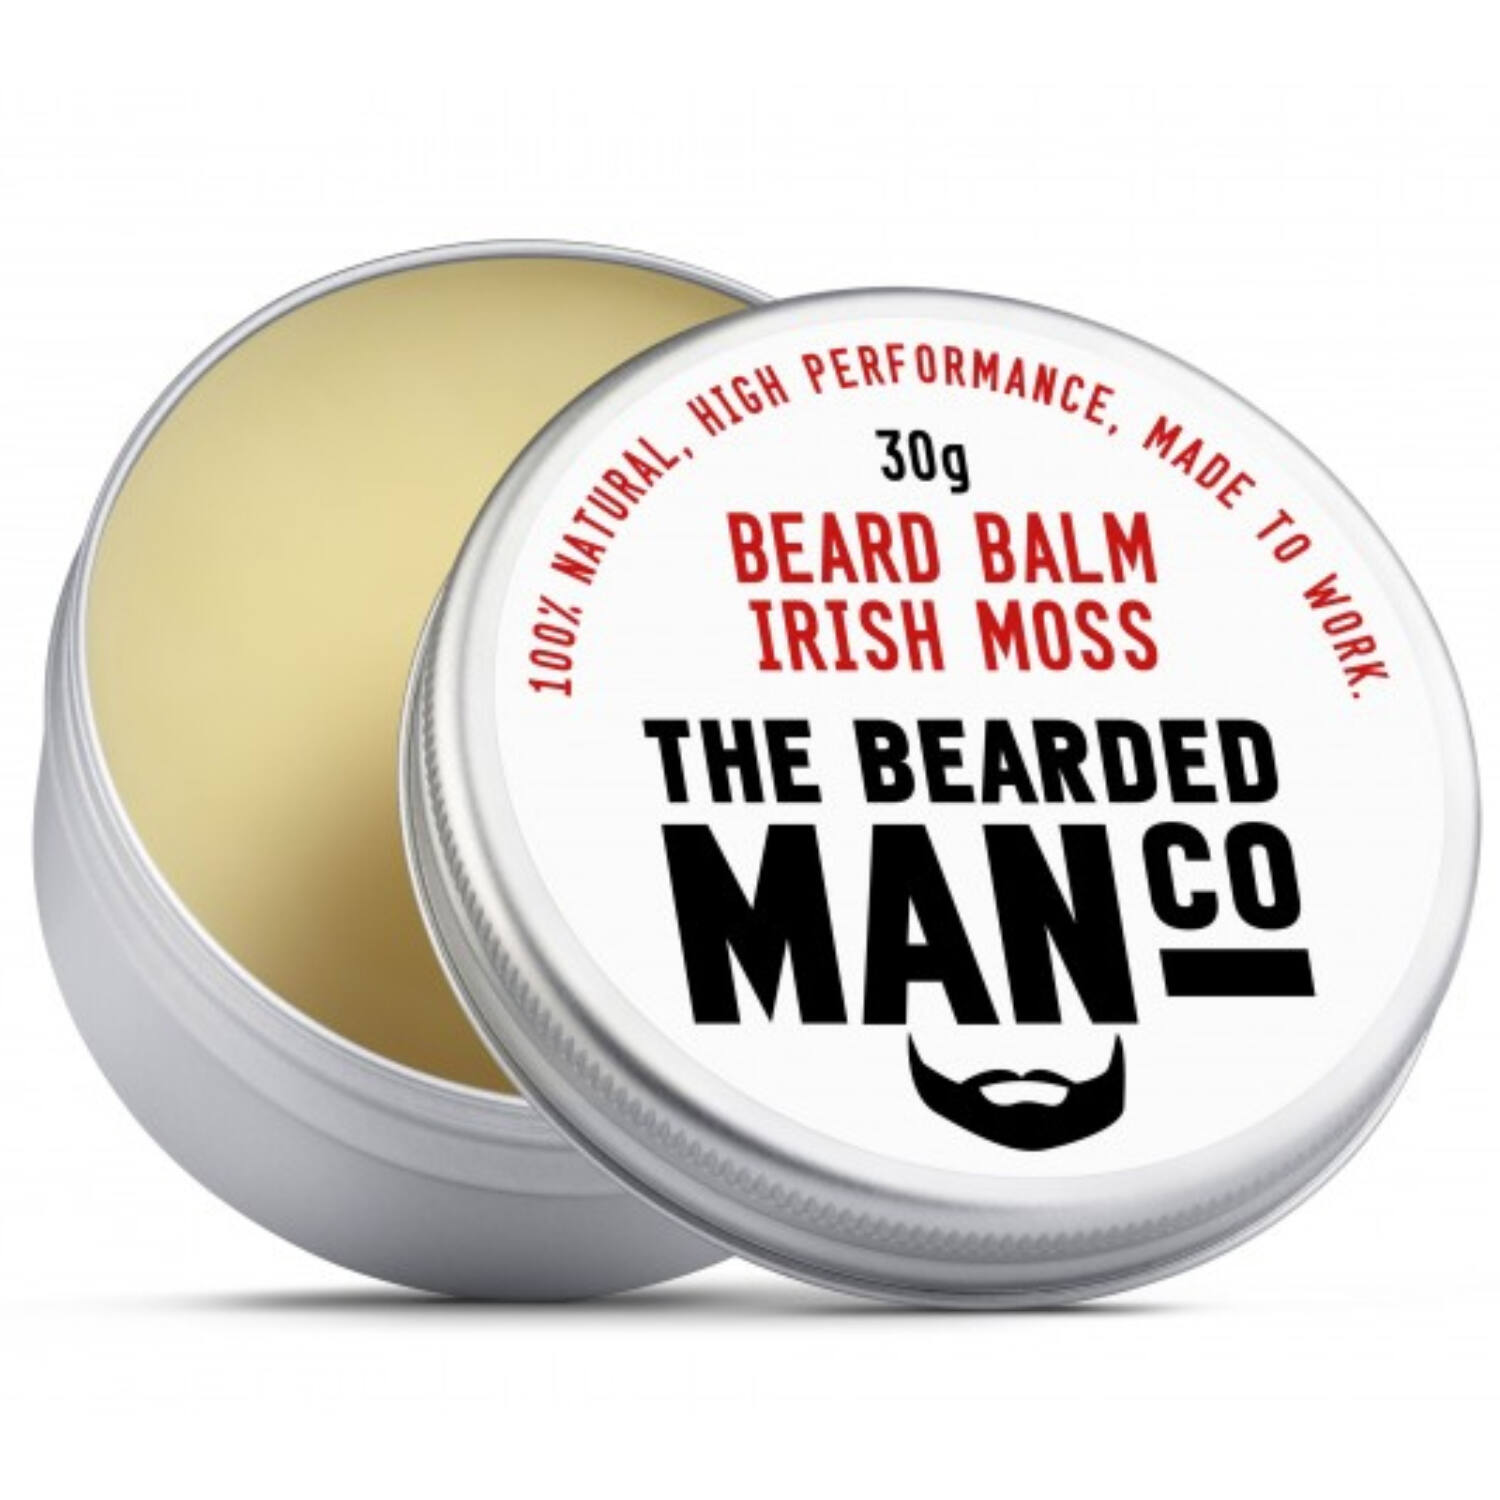 the bearded man company irish moss szakállbalzsam